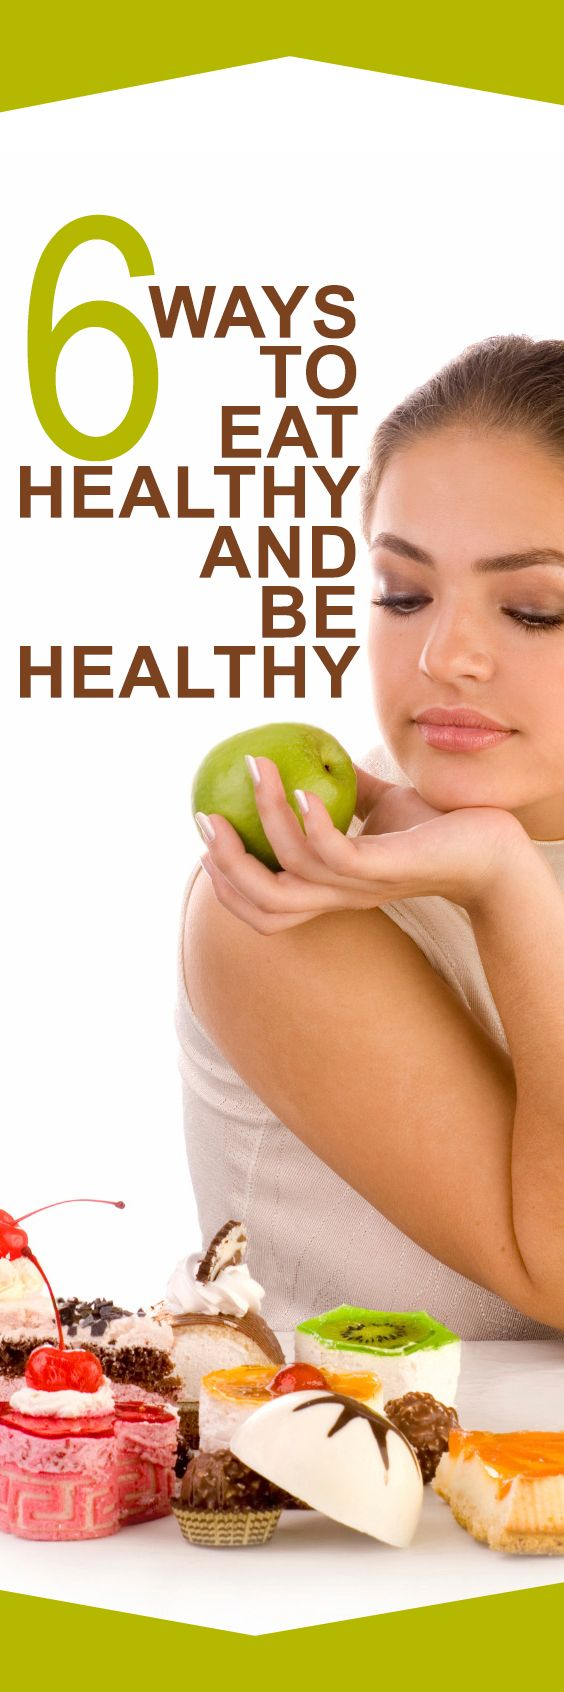 what to eat to be healthy and fit